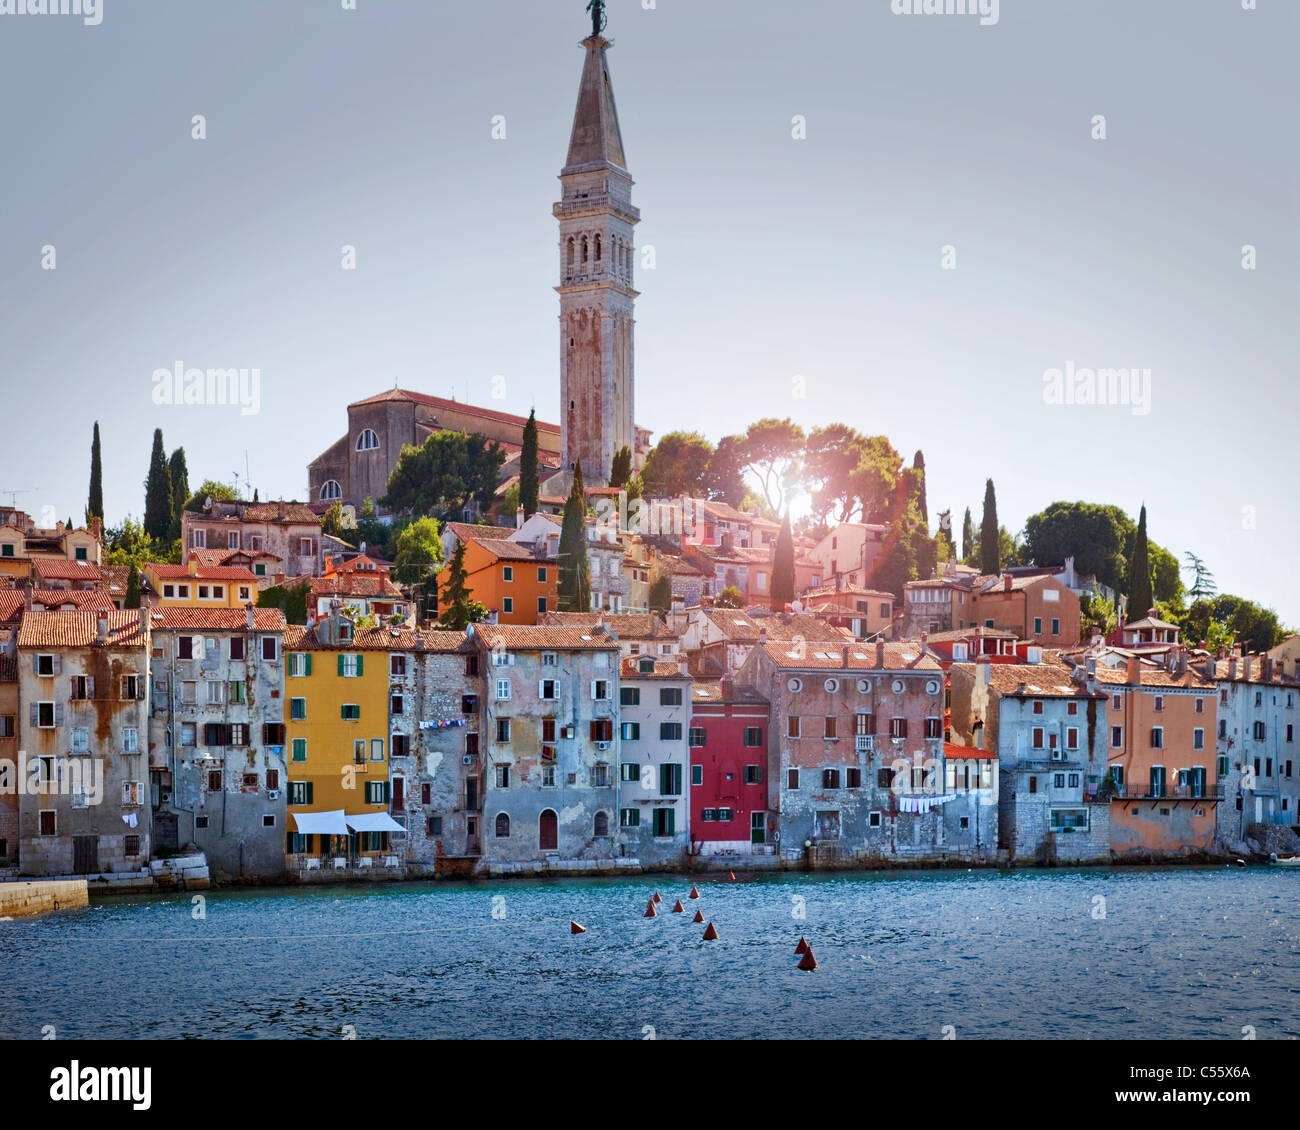 HR - ISTRIA: Historic Town of Rovinj - Stock Image